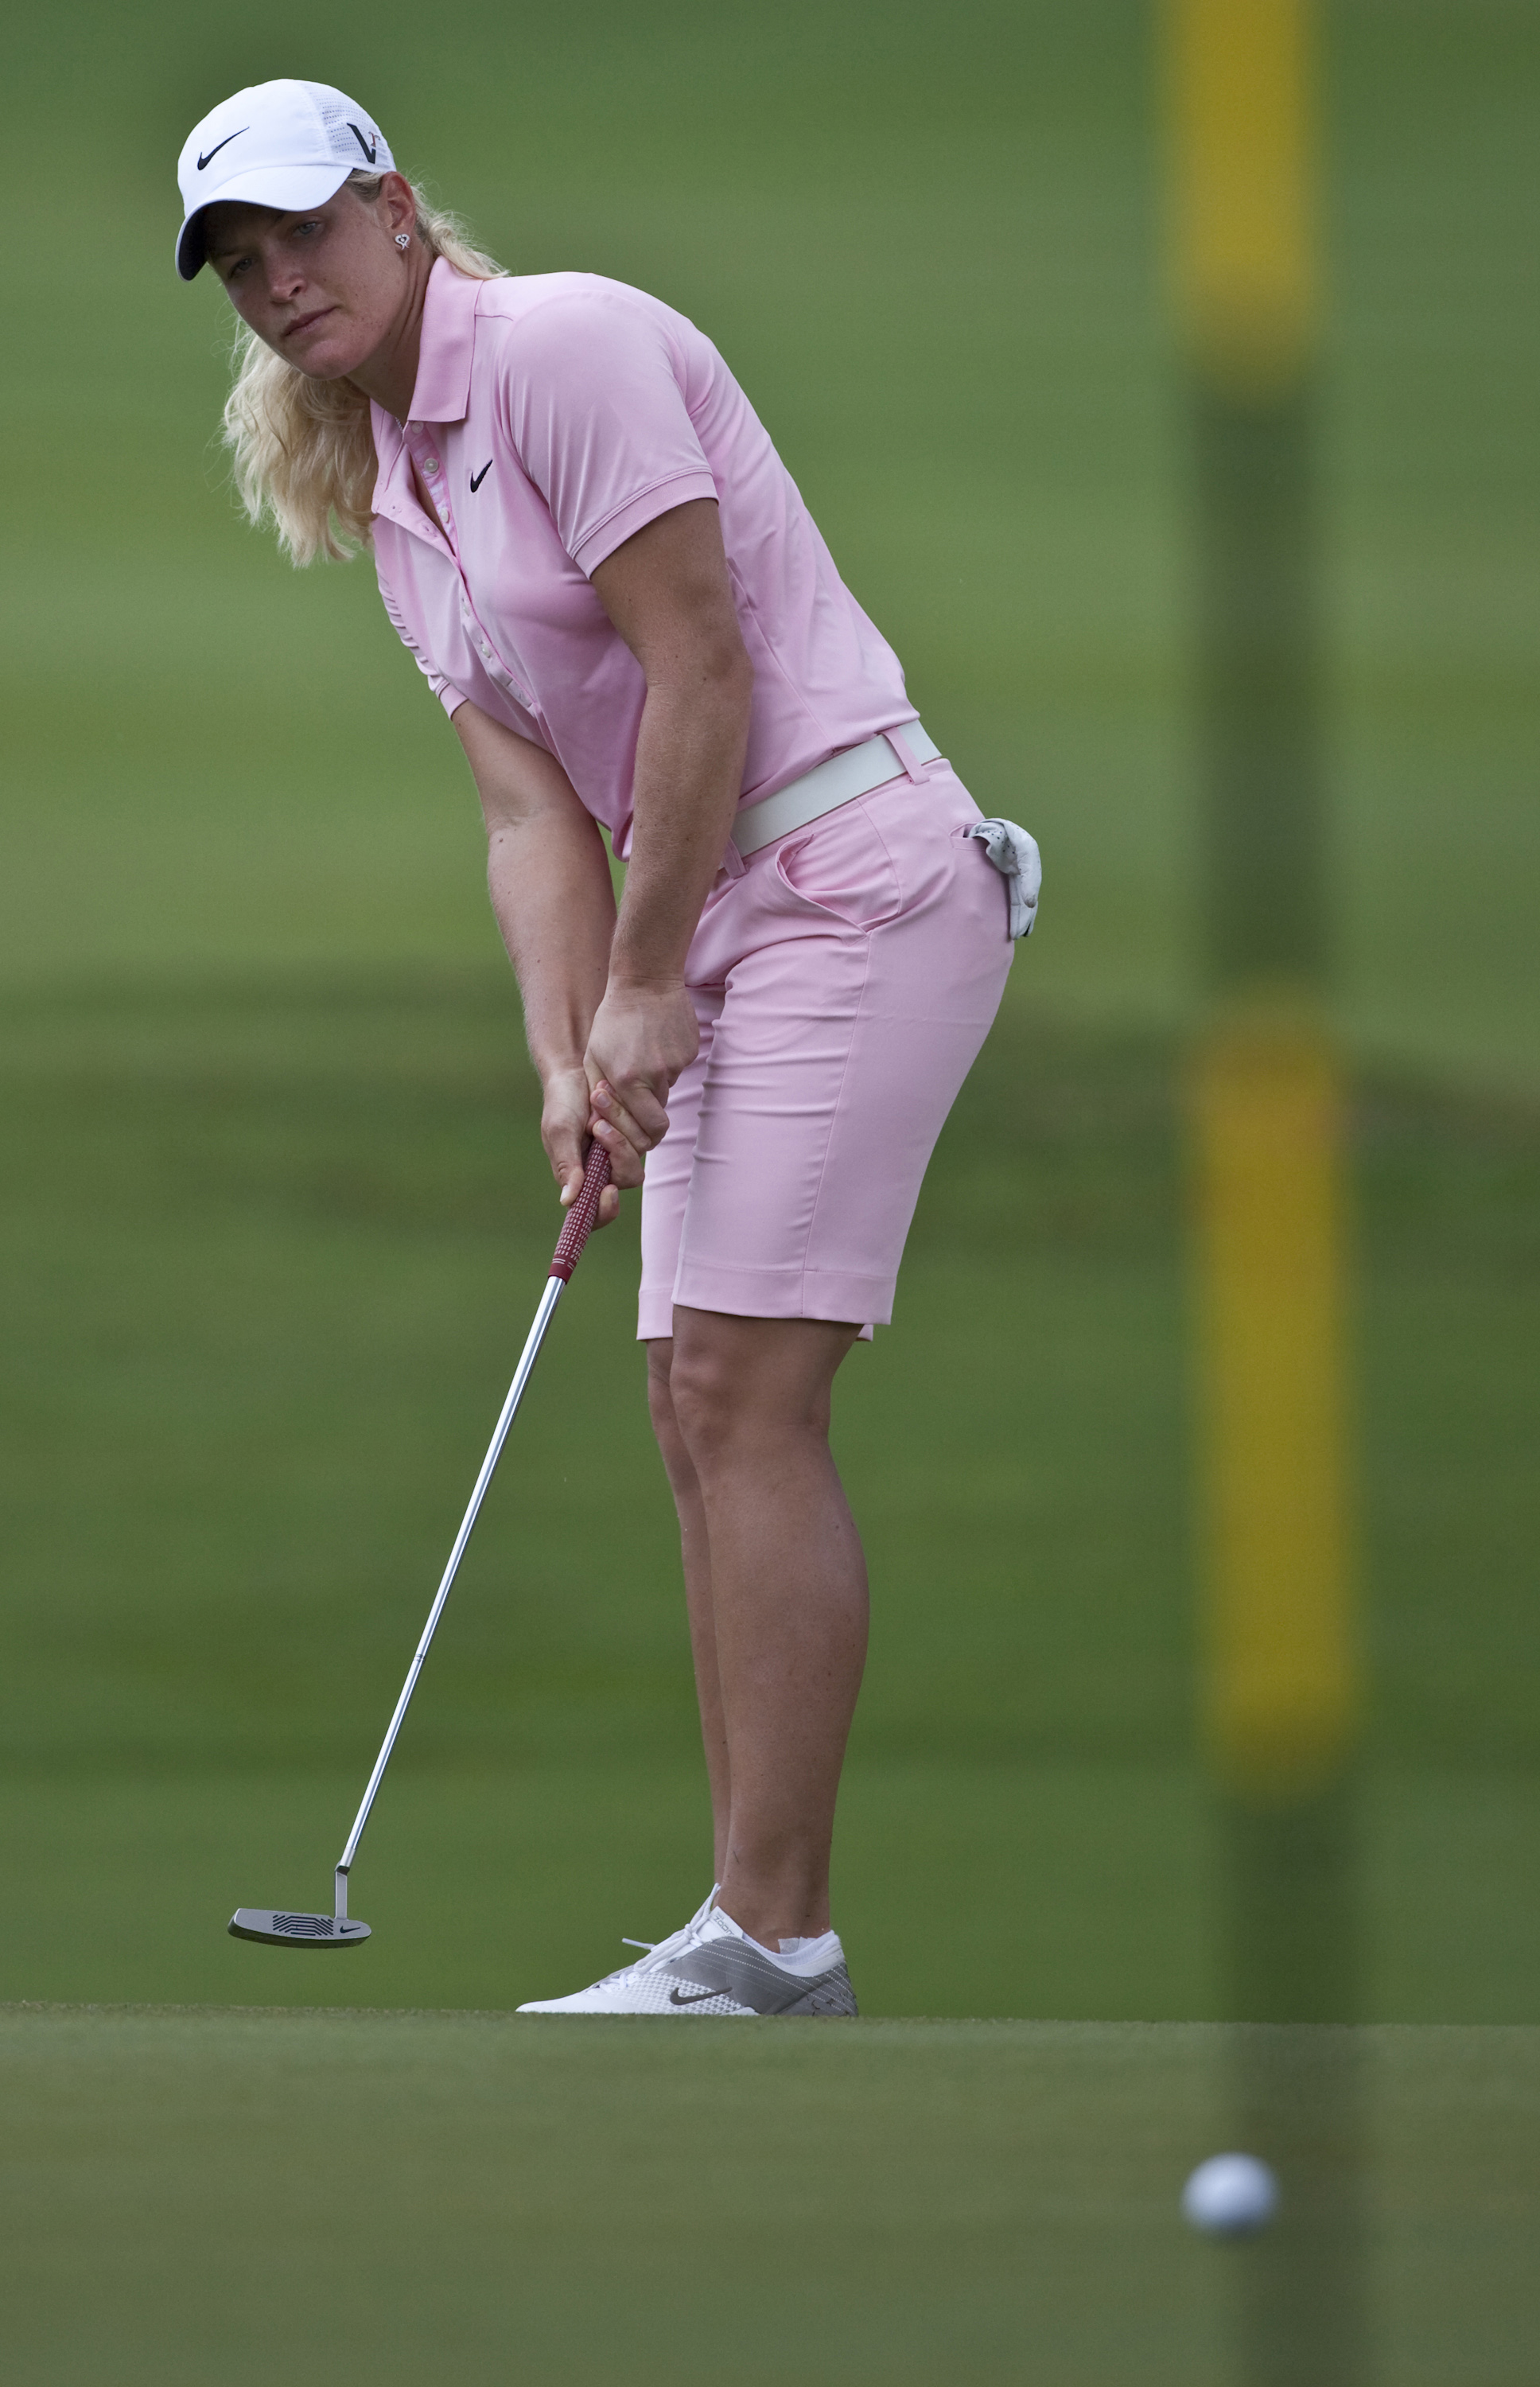 Suzann Pettersen watches a putt during the third round of the LPGA Thailand.